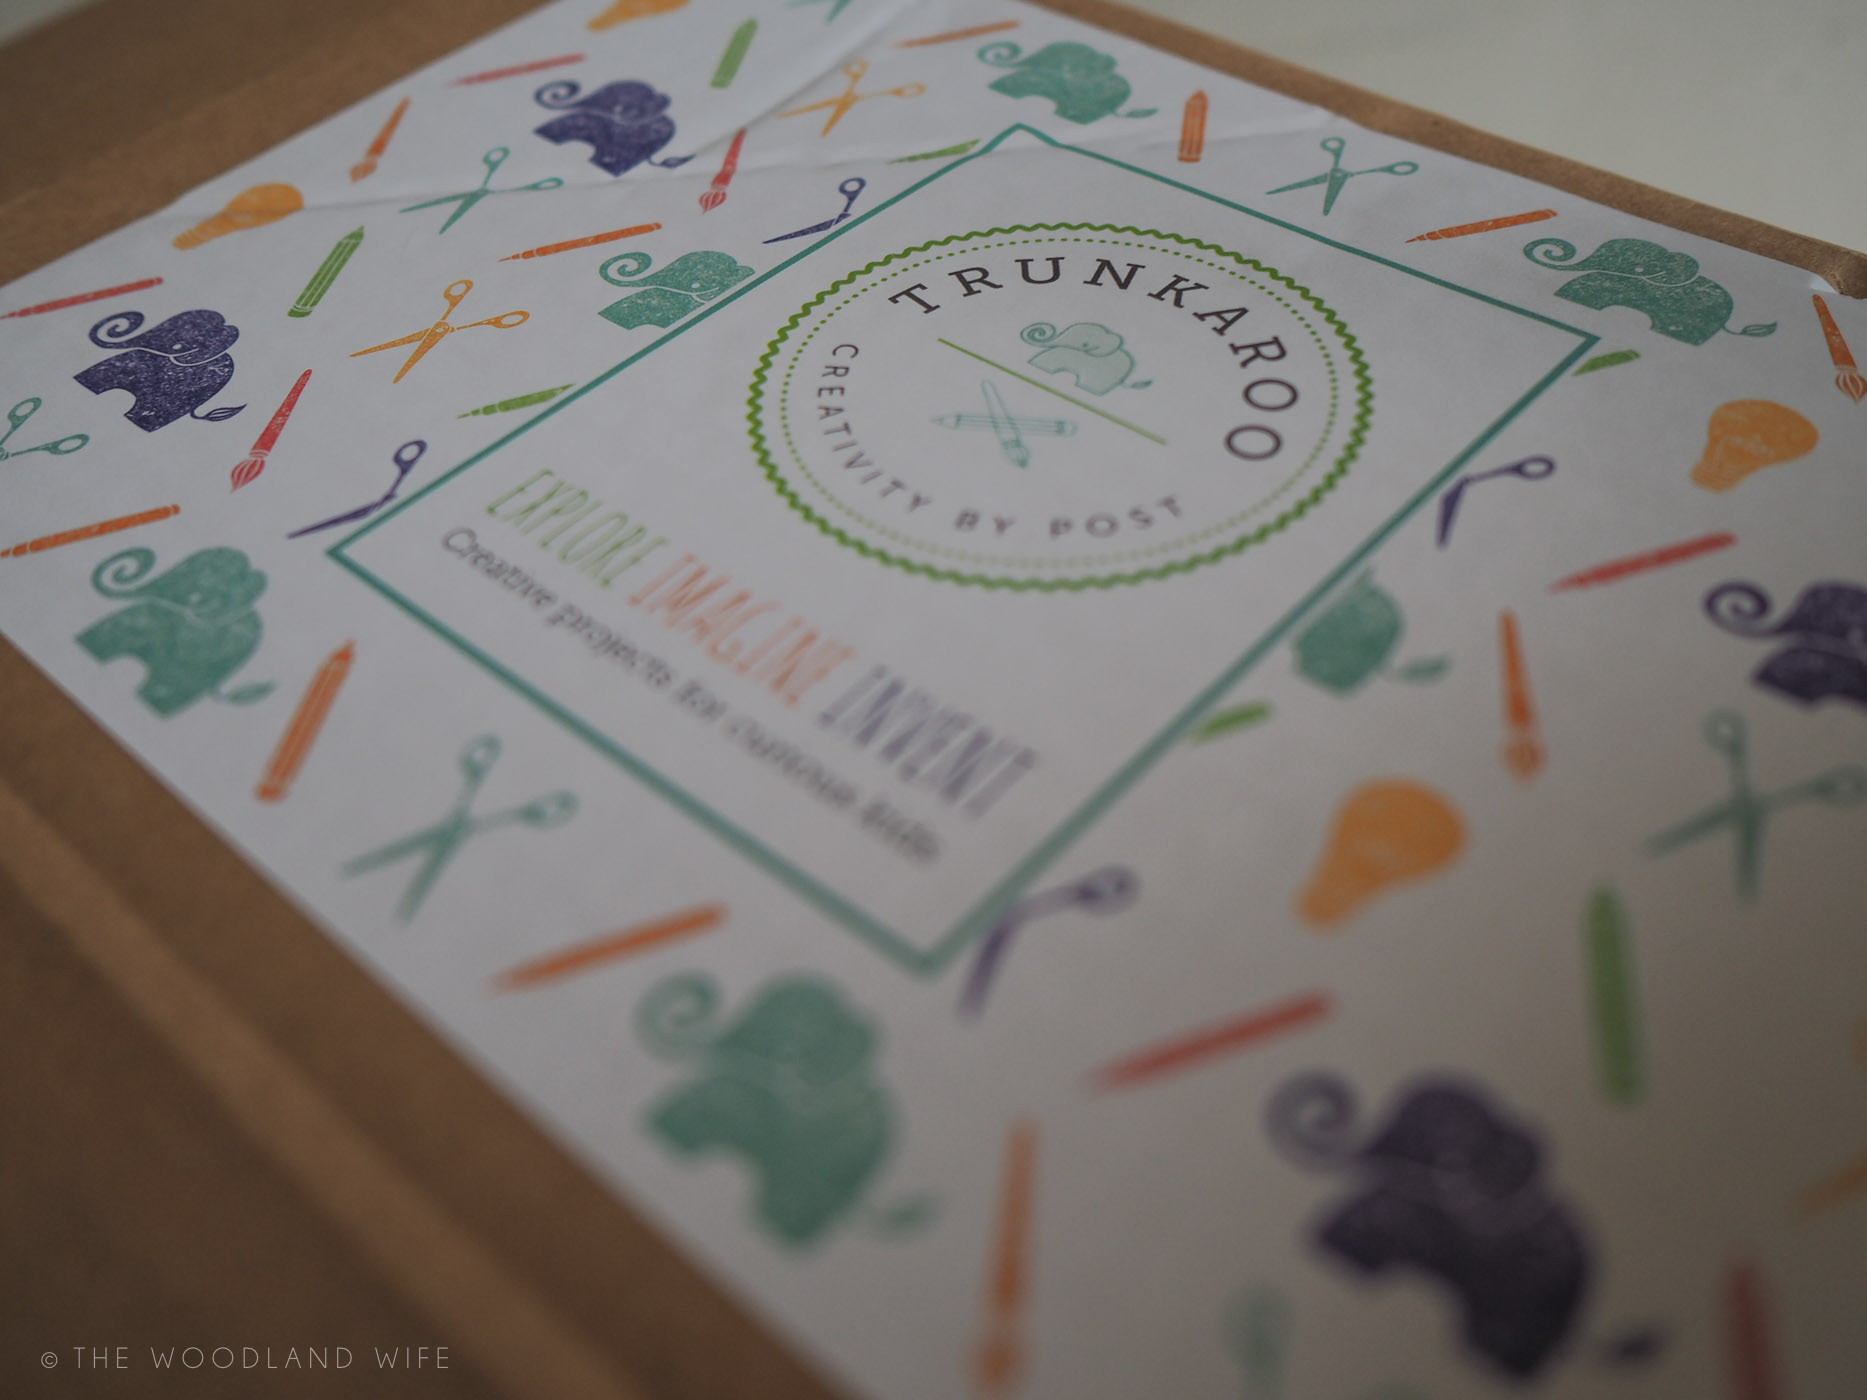 The Woodland Wife - Creative, hassle free Half Term activities at home - Trunkaroo Subscription Boxes